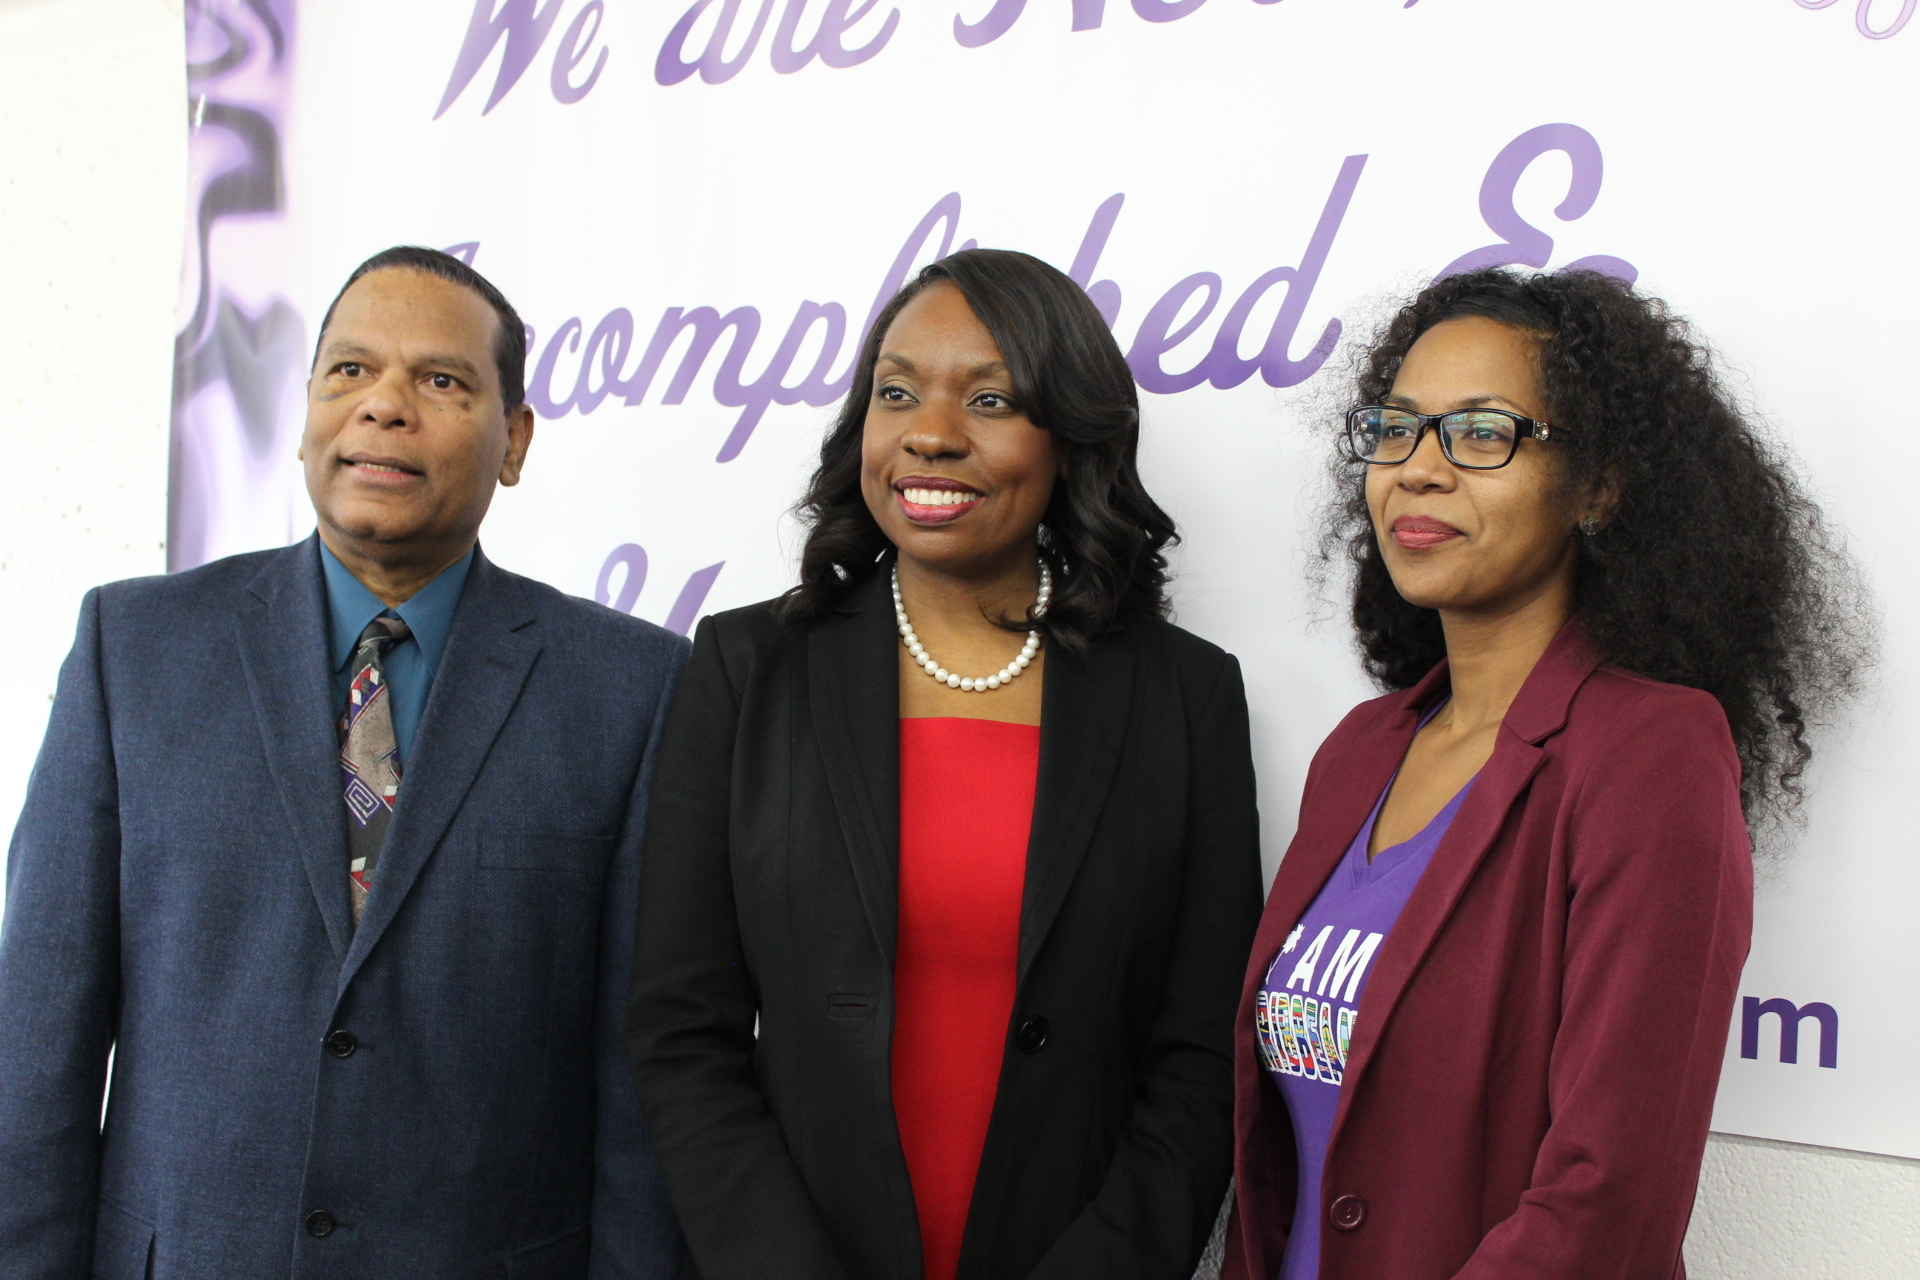 Minister of Education, Mitzie Hunter, and C5 Directors, John Laban and Camille Kerr, at the public launching of C5